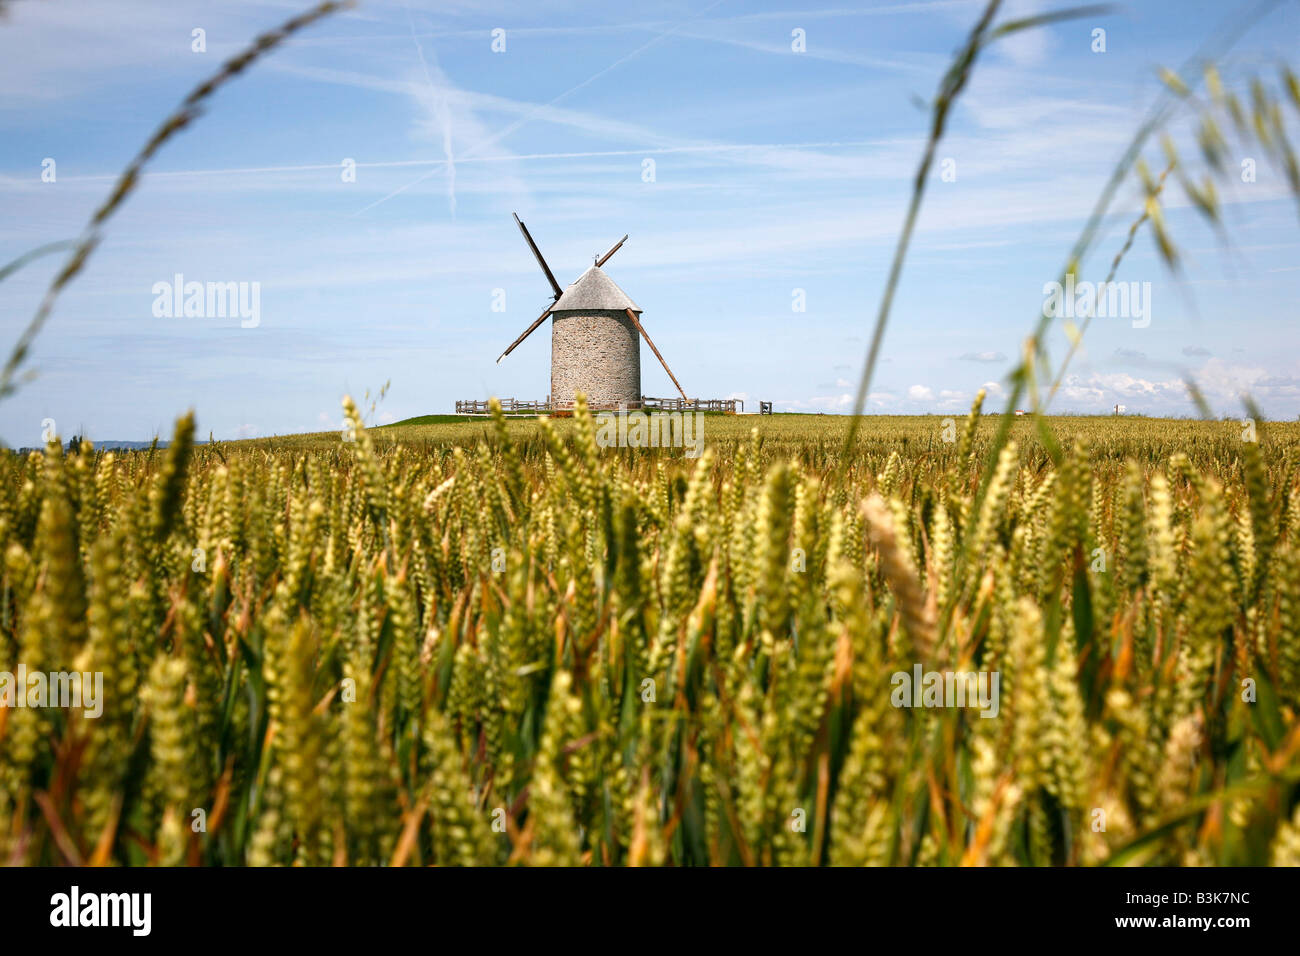 July 2008 - Wind mill Normandy France - Stock Image